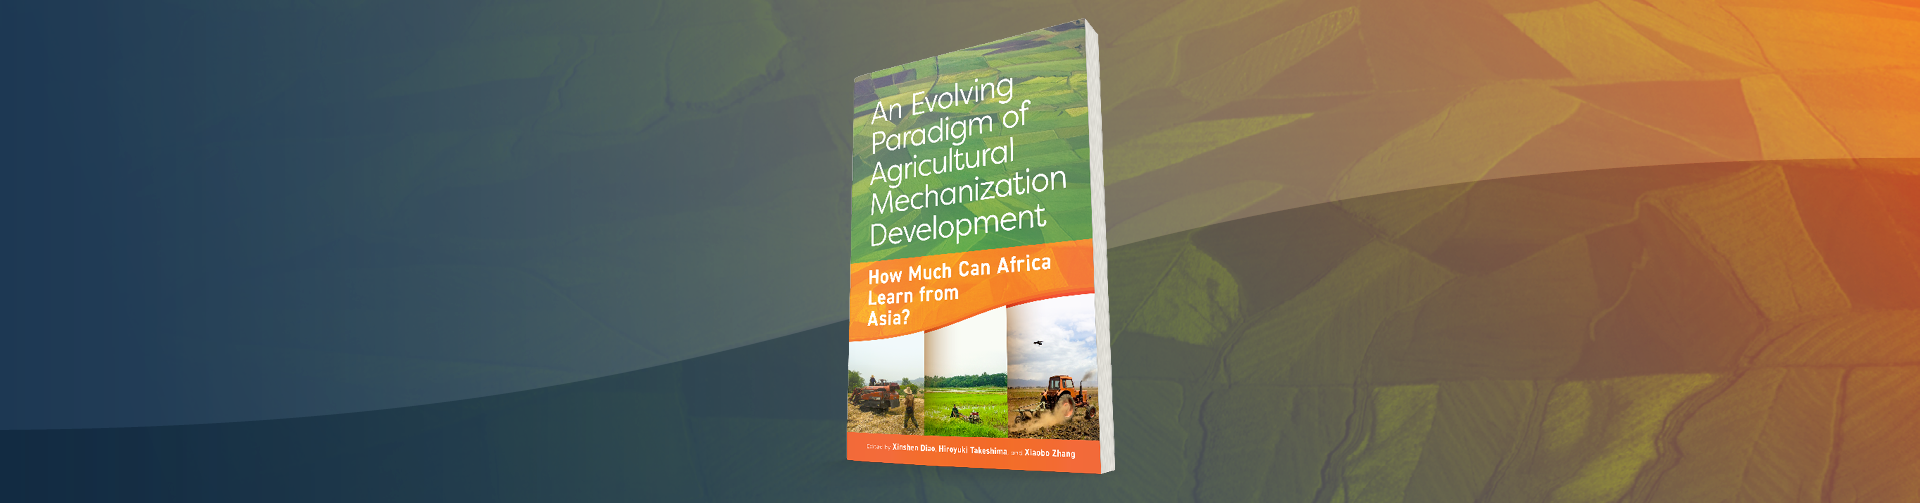 What Africa can learn from Asia about agricultural mechanization